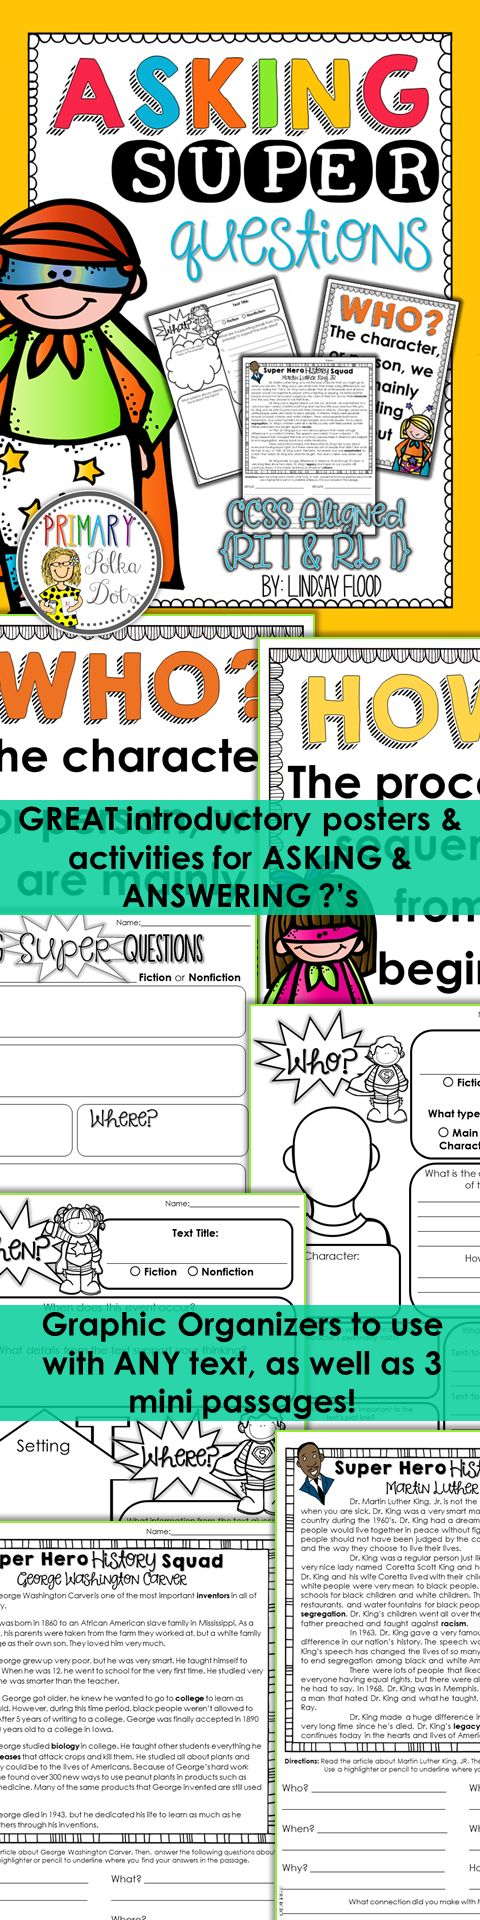 84 best Question strategies images on Pinterest | Classroom ideas ...